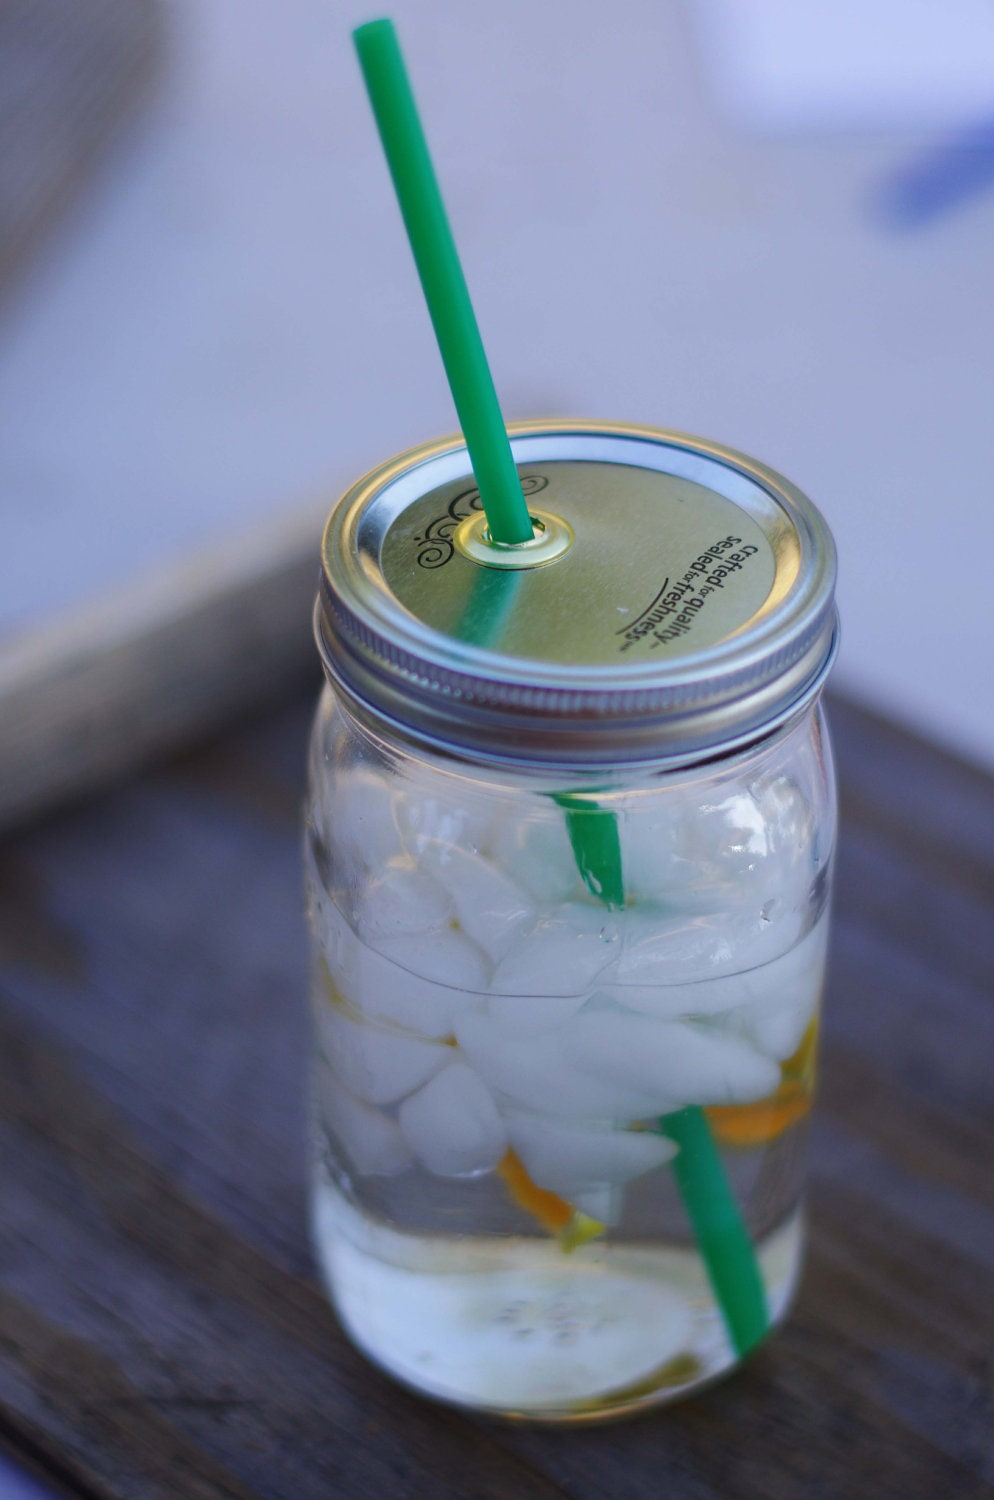 32 oz wide mouth mason jars -  32 Ounce Wide Mouth Mason Jar Straw Cup Zoom